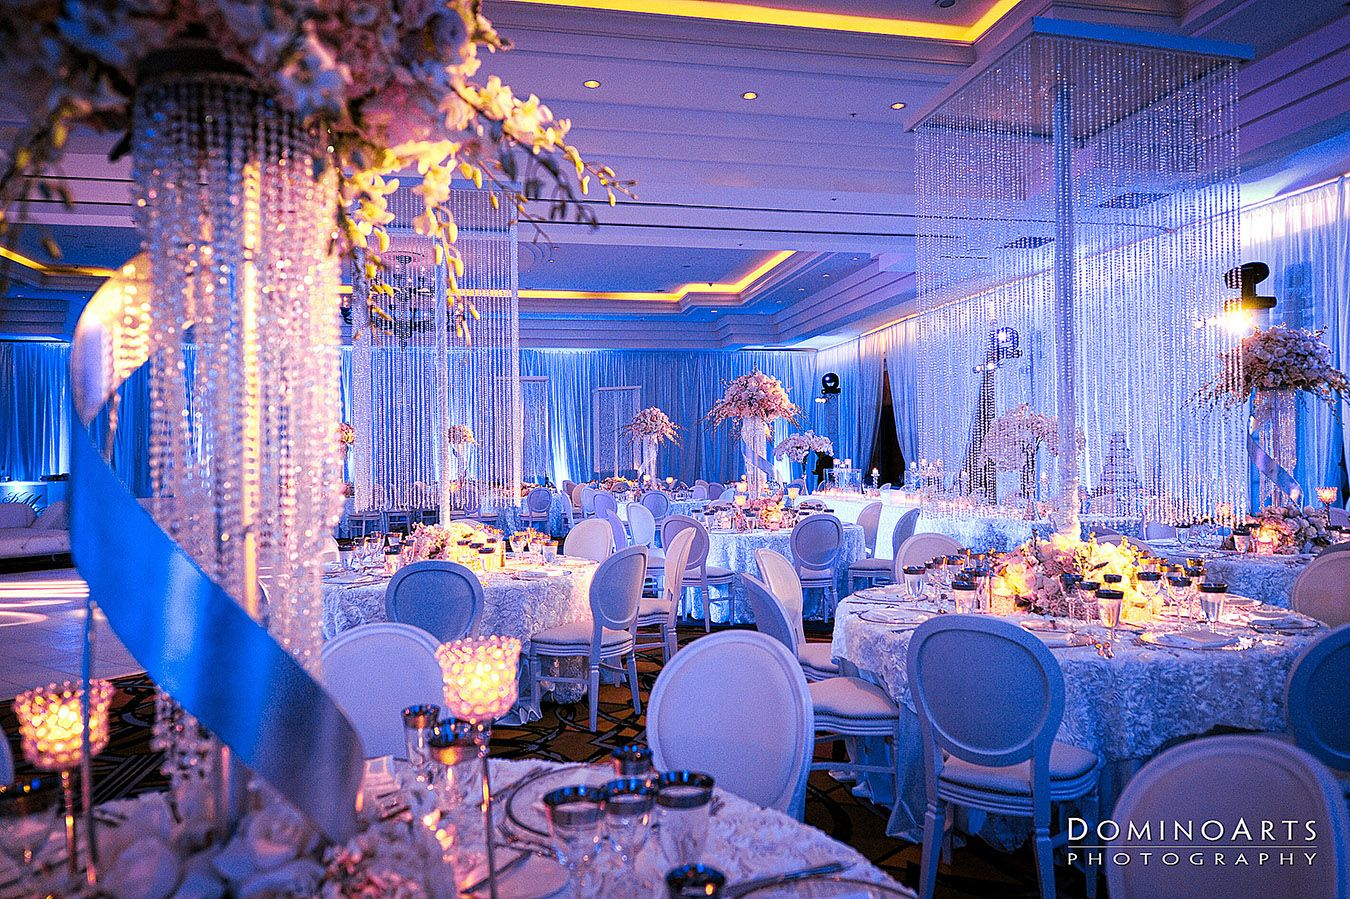 Wedding reception room weddings ideas pinterest for Pictures of wedding venues decorated